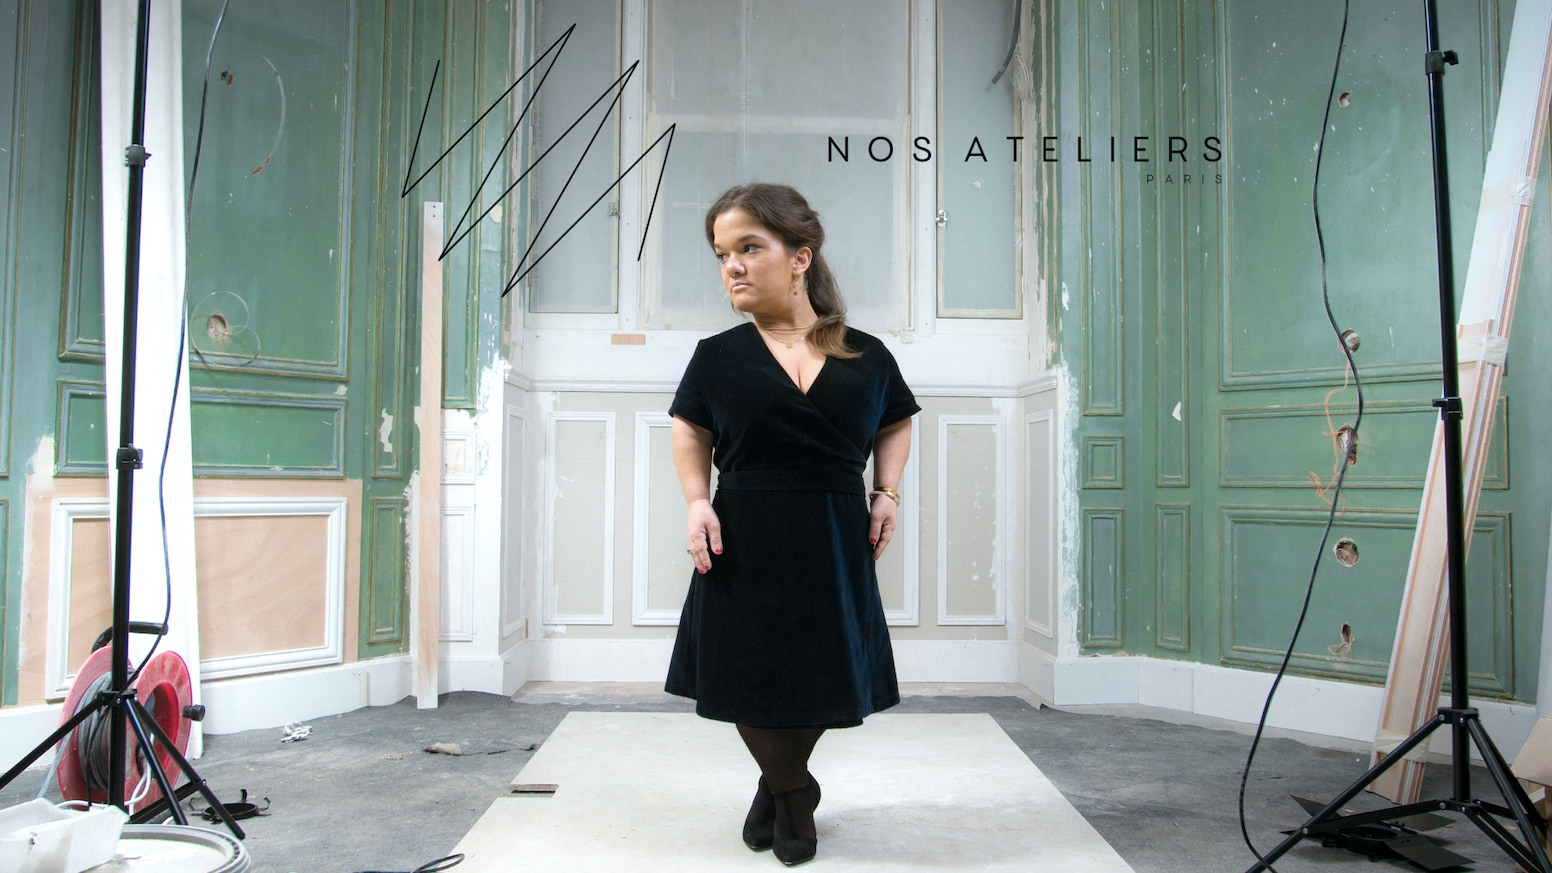 Nos Ateliers is the first French ready to wear brand for Little People. Go check our website at www.nosateliersparis.com